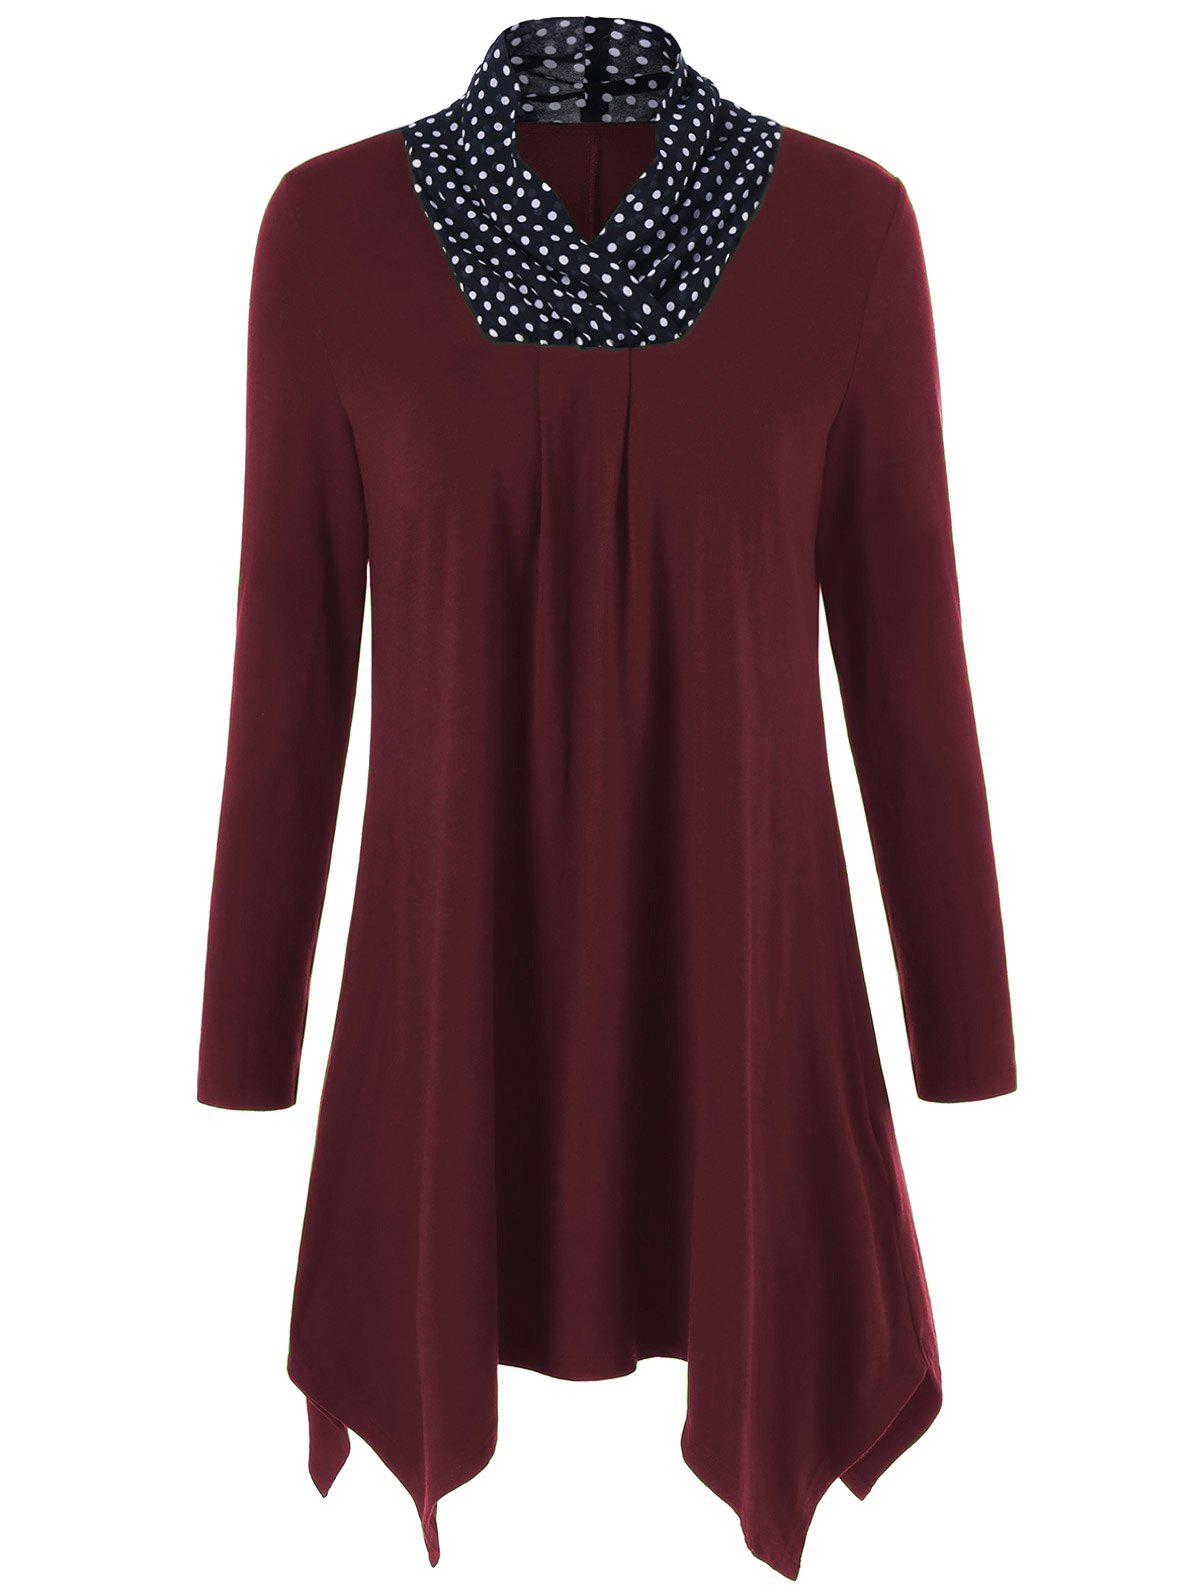 Plus Size Polka Dot Trim Longline T-ShirtWOMEN<br><br>Size: XL; Color: BURGUNDY; Material: Polyester,Spandex; Shirt Length: Long; Sleeve Length: Full; Collar: Stand-Up Collar; Style: Casual; Season: Fall,Spring; Pattern Type: Patchwork; Weight: 0.4200kg; Package Contents: 1 x T-Shirt;